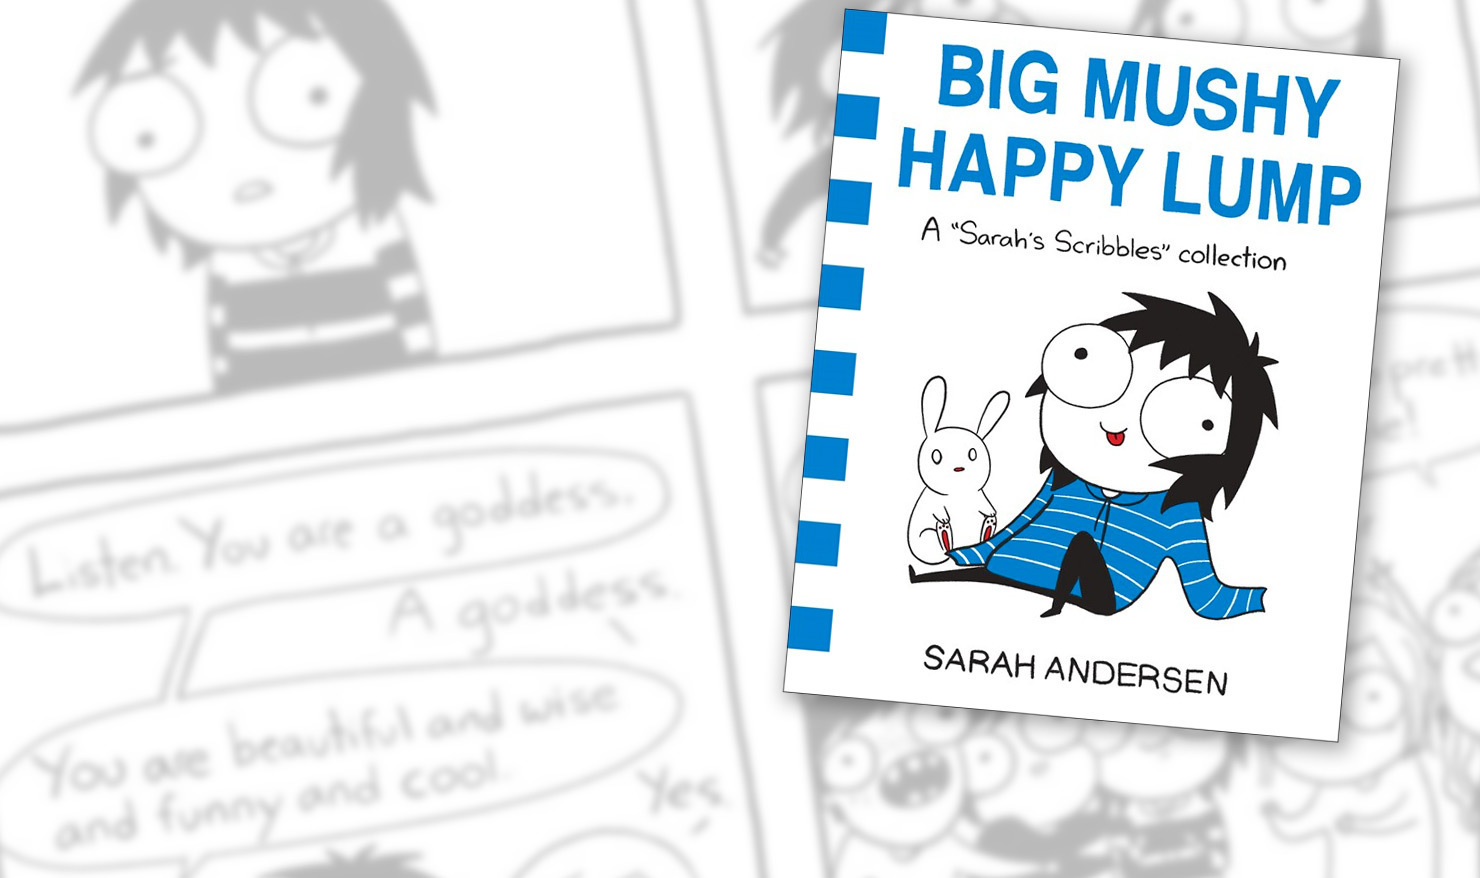 Sarah Andersen Packs More Of Her Best Comics Into One 'Big Mushy Happy Lump' [Interview]